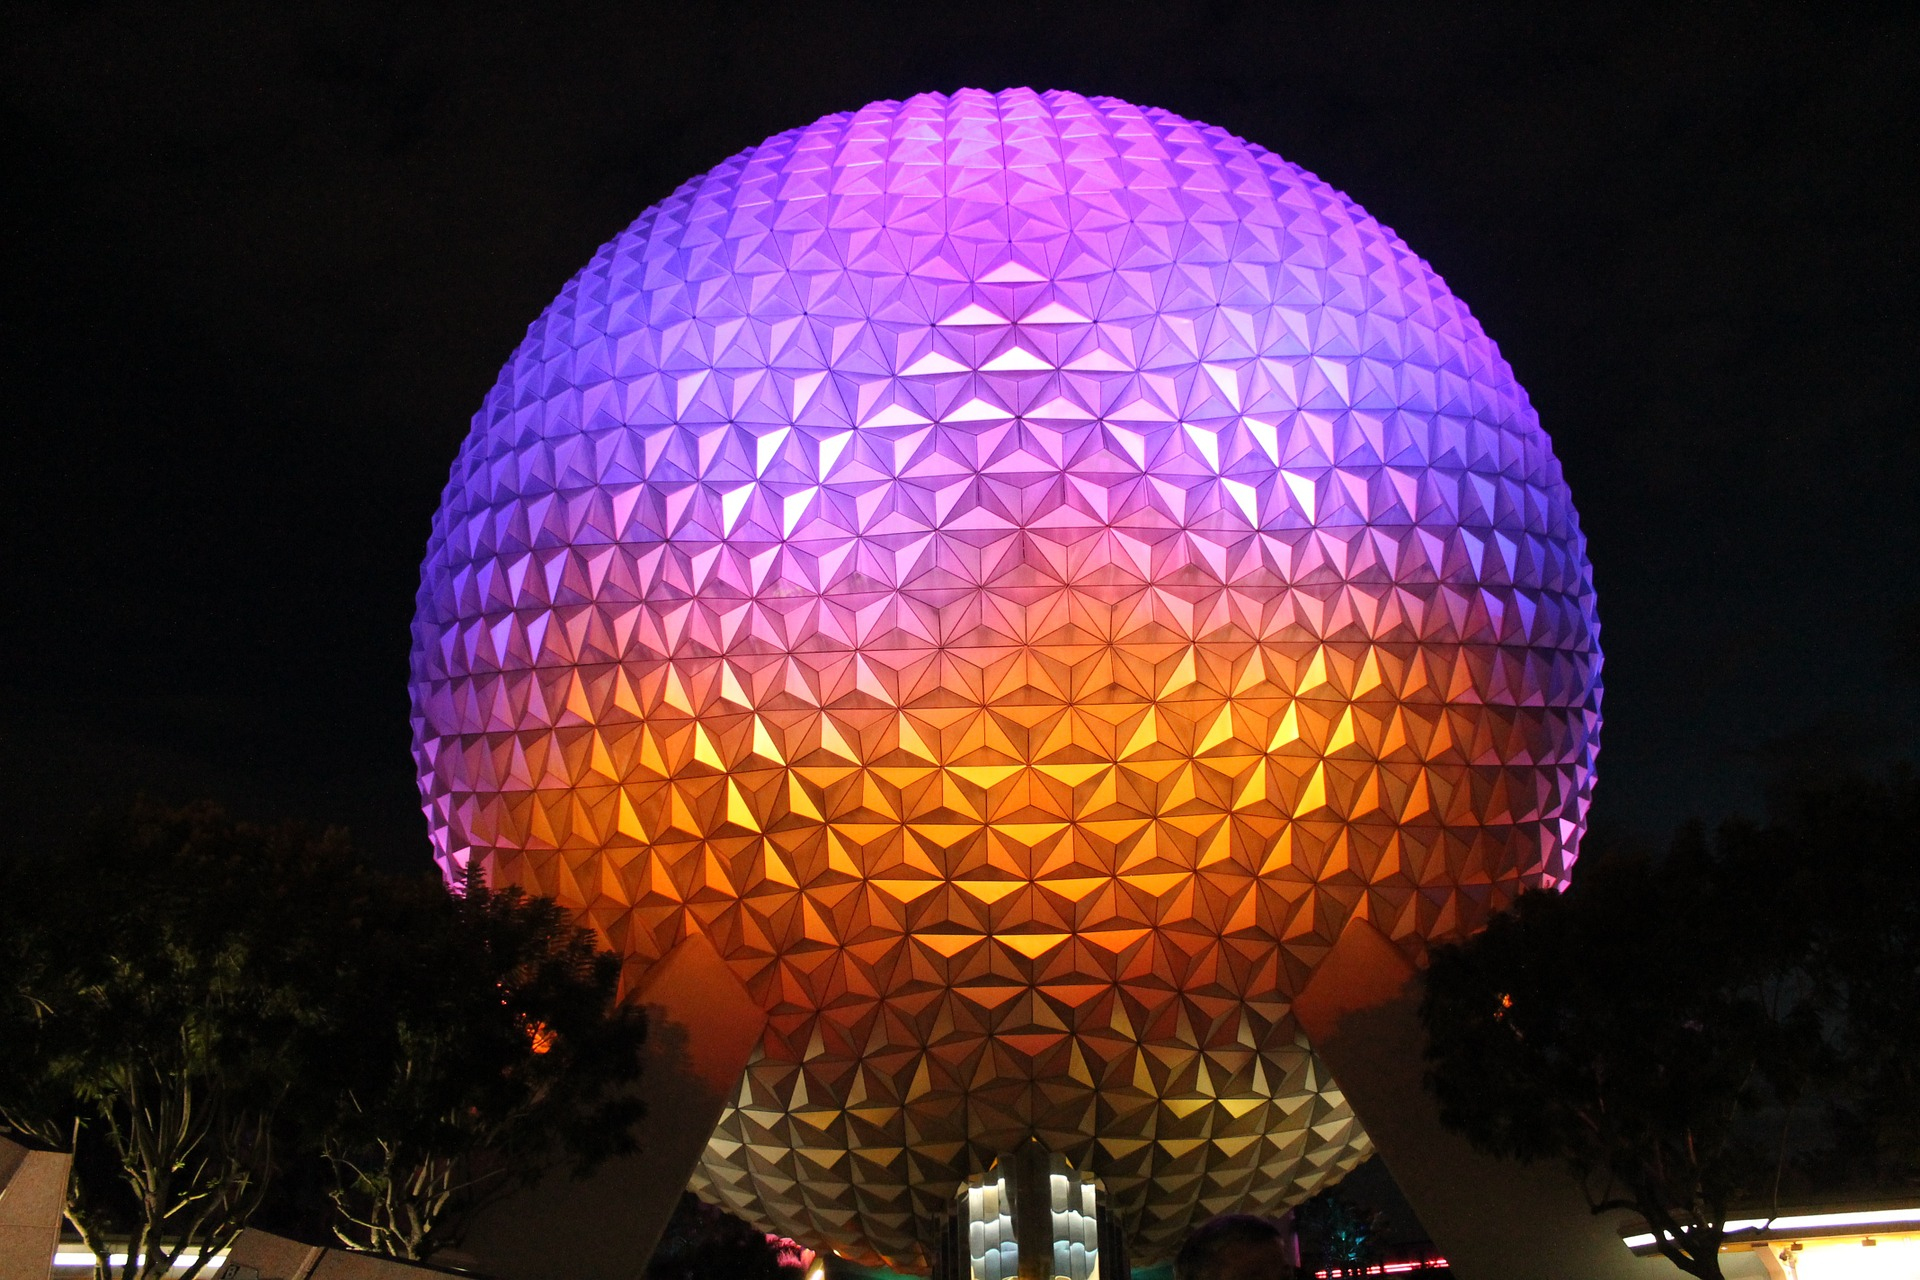 50 Geodesic Domes Around the World | Spaceship Earth at Epcot Center